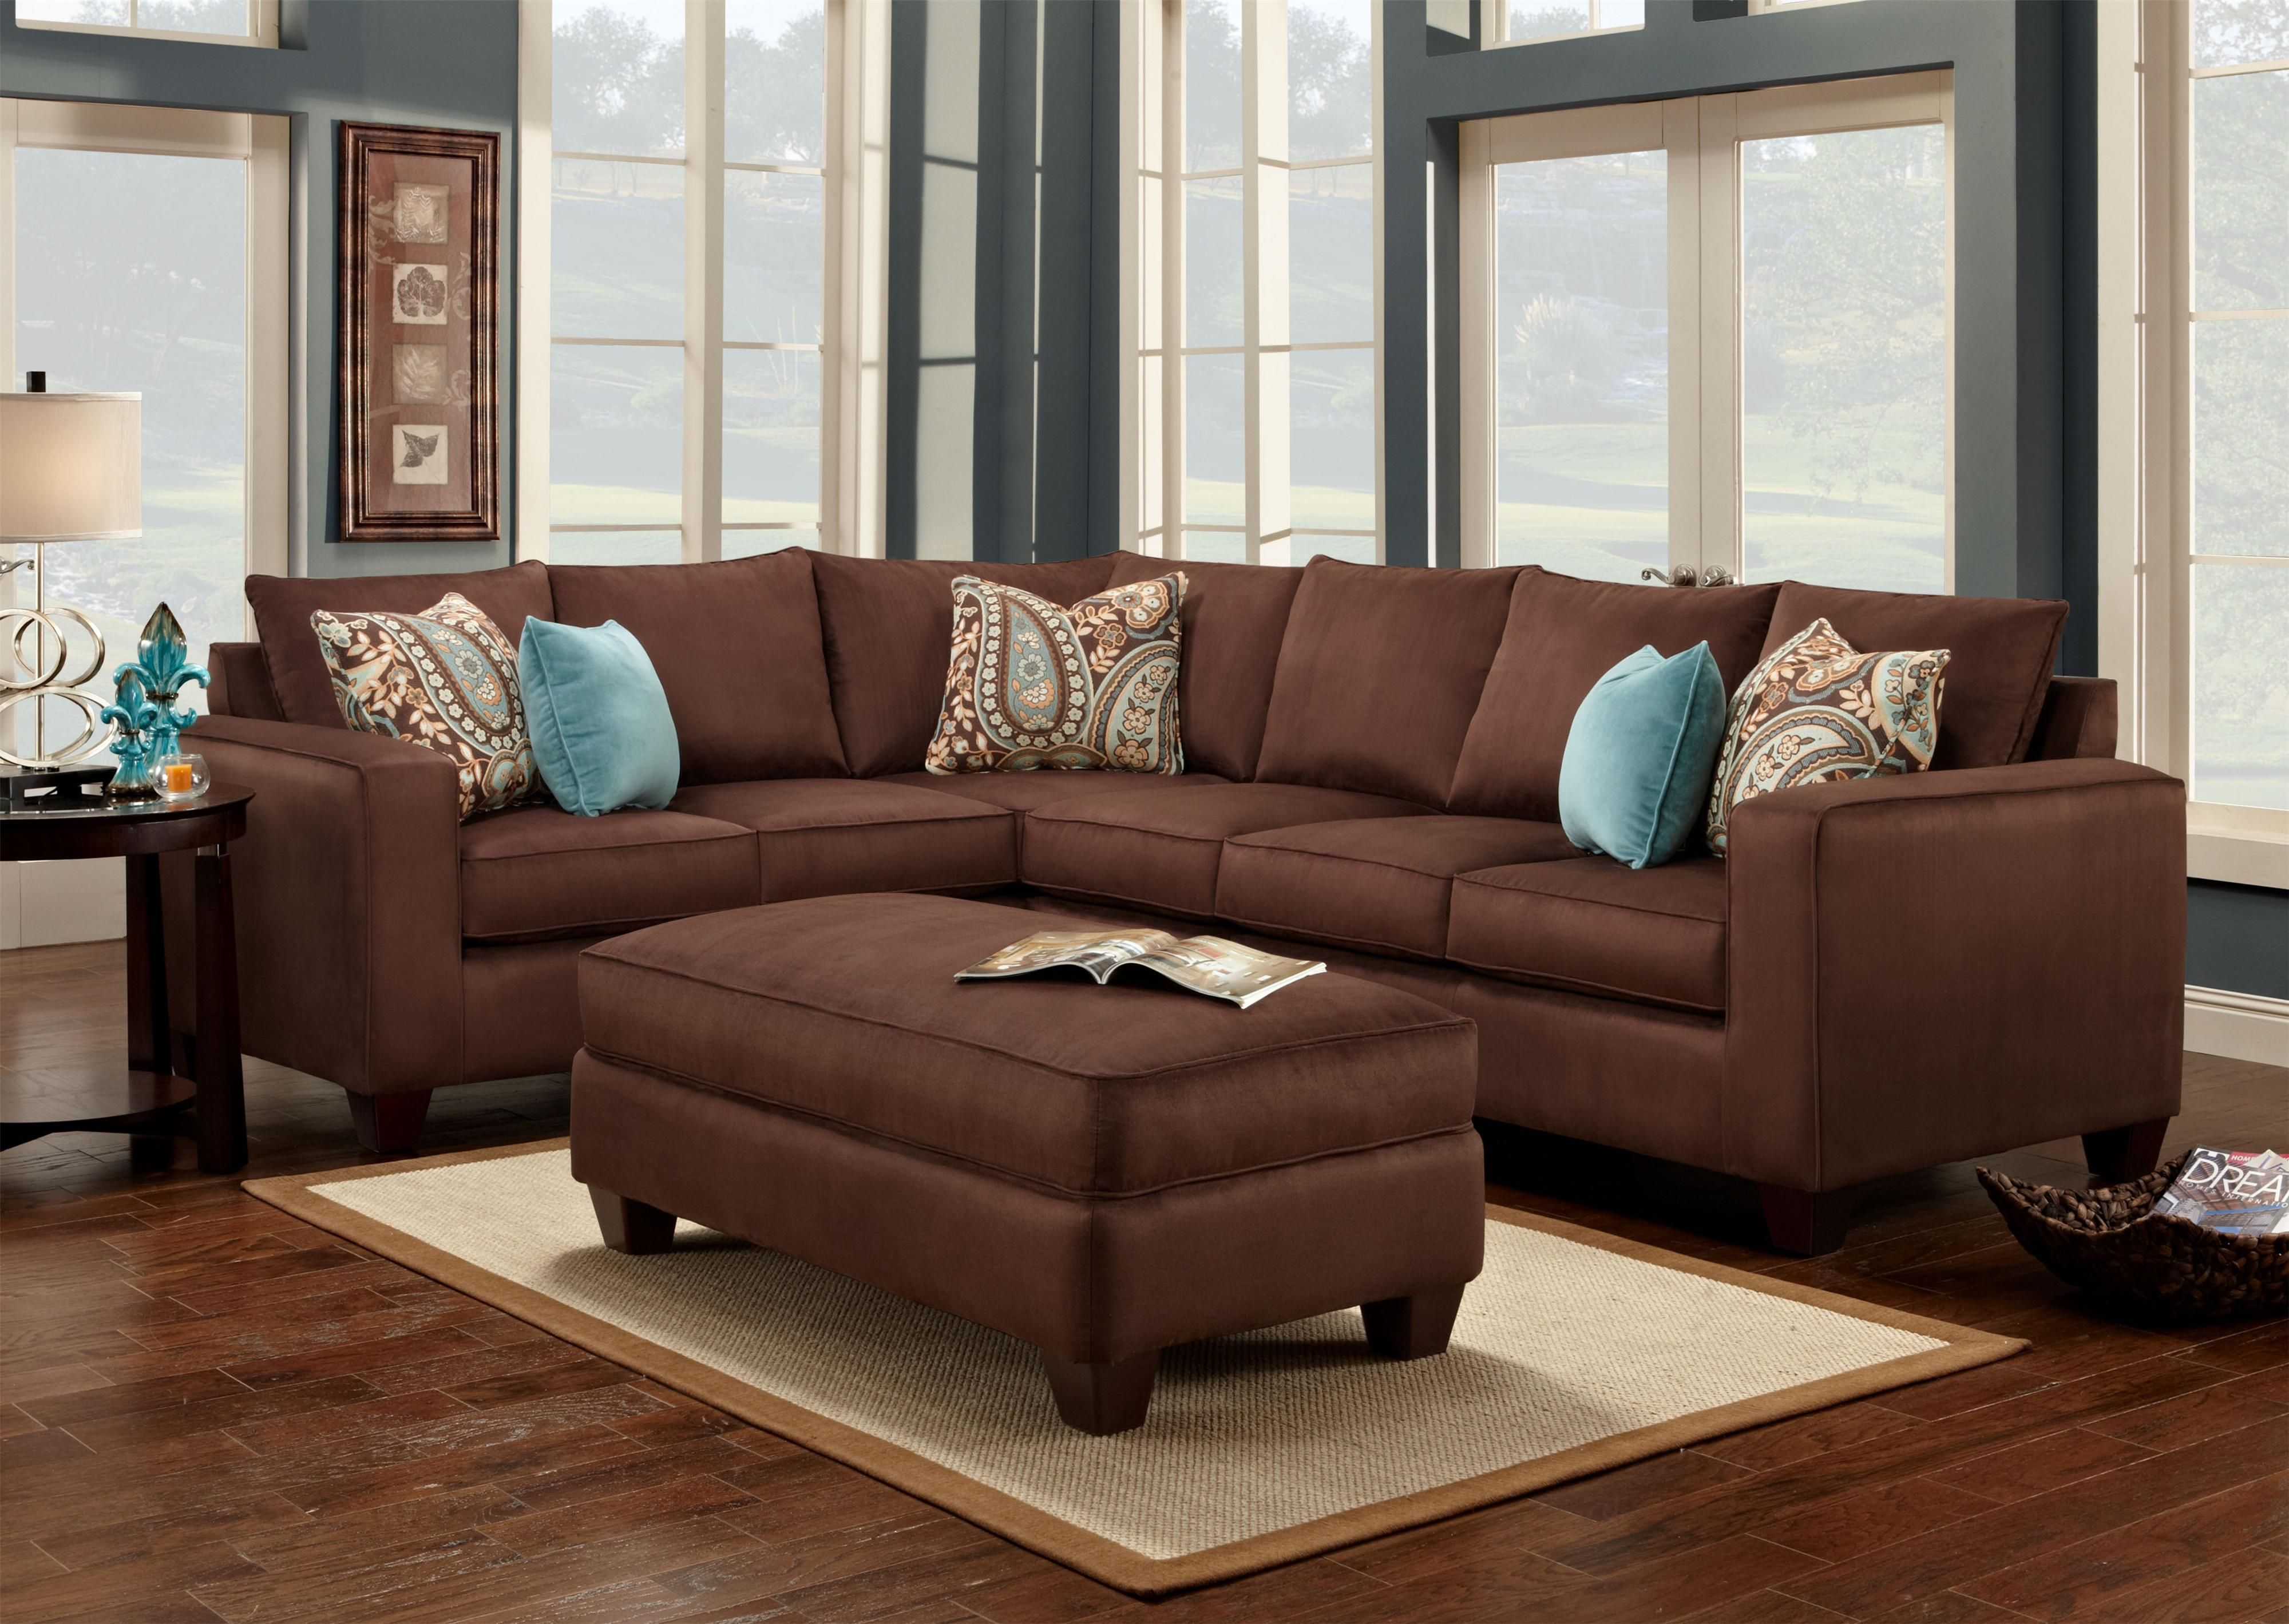 Turquoise And Chocolate Brown Living Room Decor Brown Couch Brown Living Room Decor Living Room Turquoise